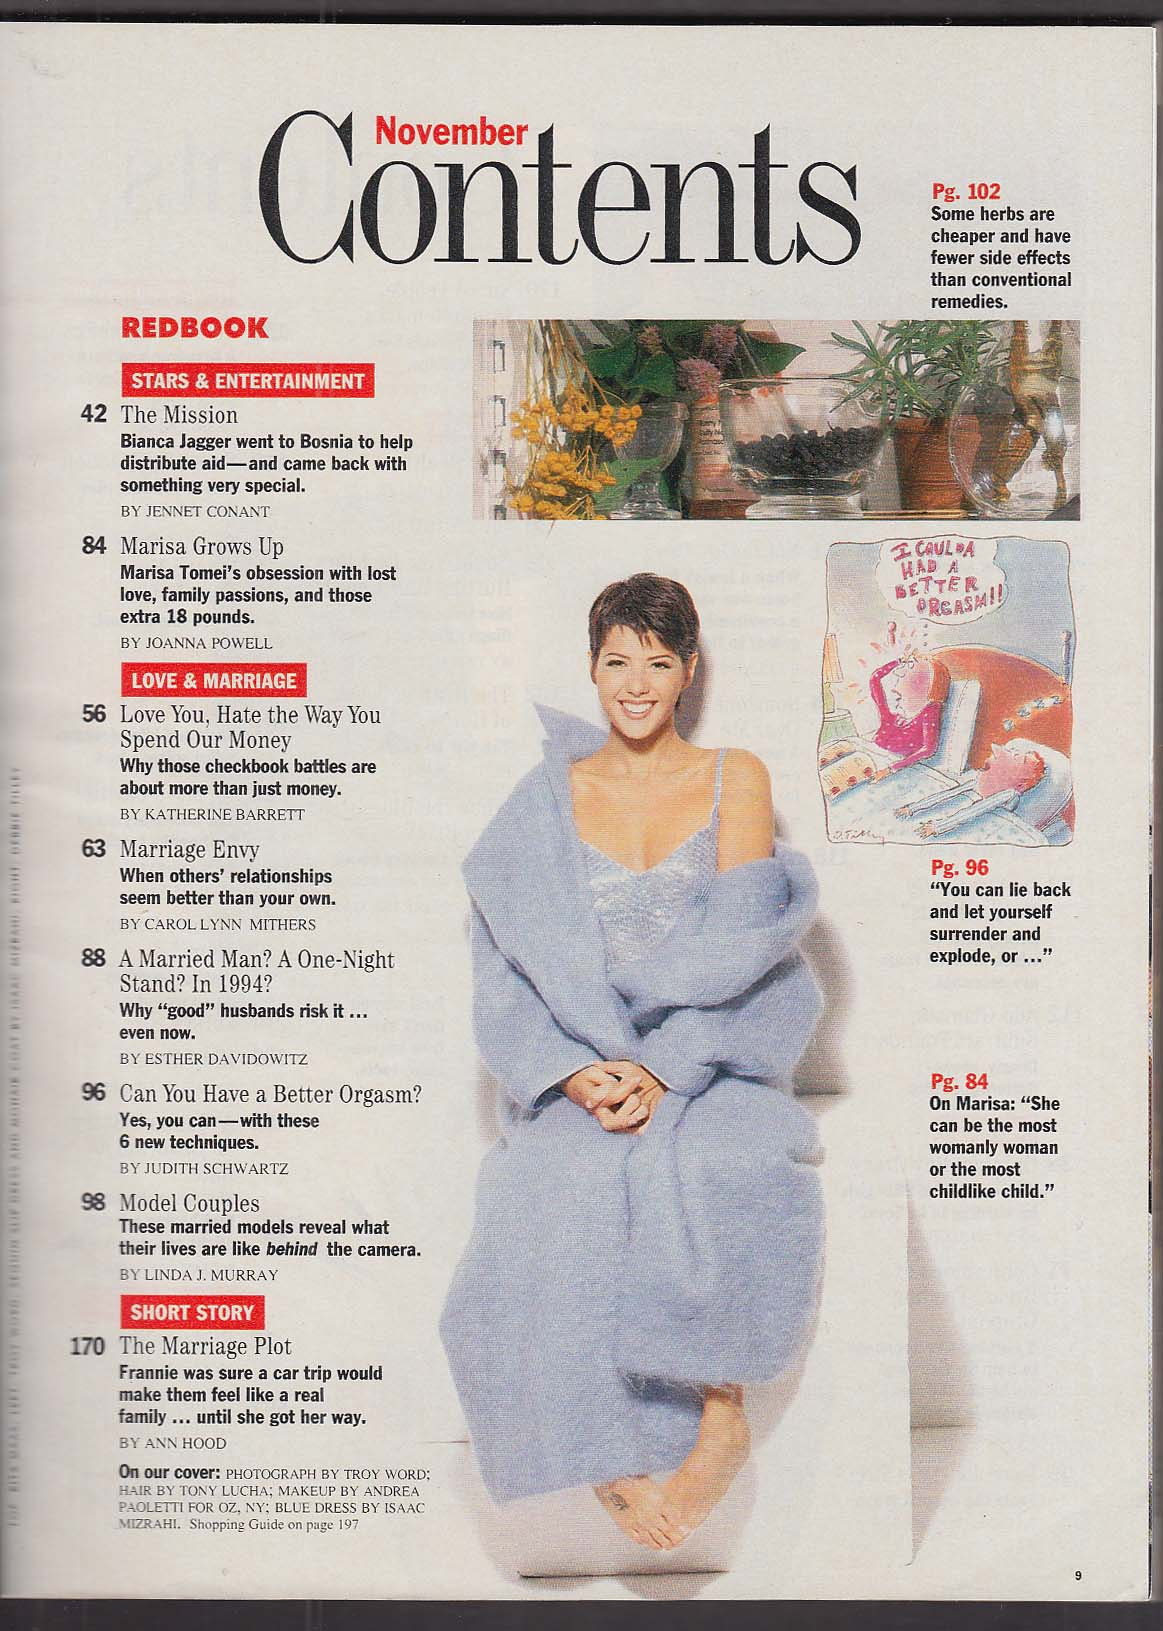 Image for REDBOOK Marisa Tomei; Herbal cures; avoiding stress, etc. 11 1994